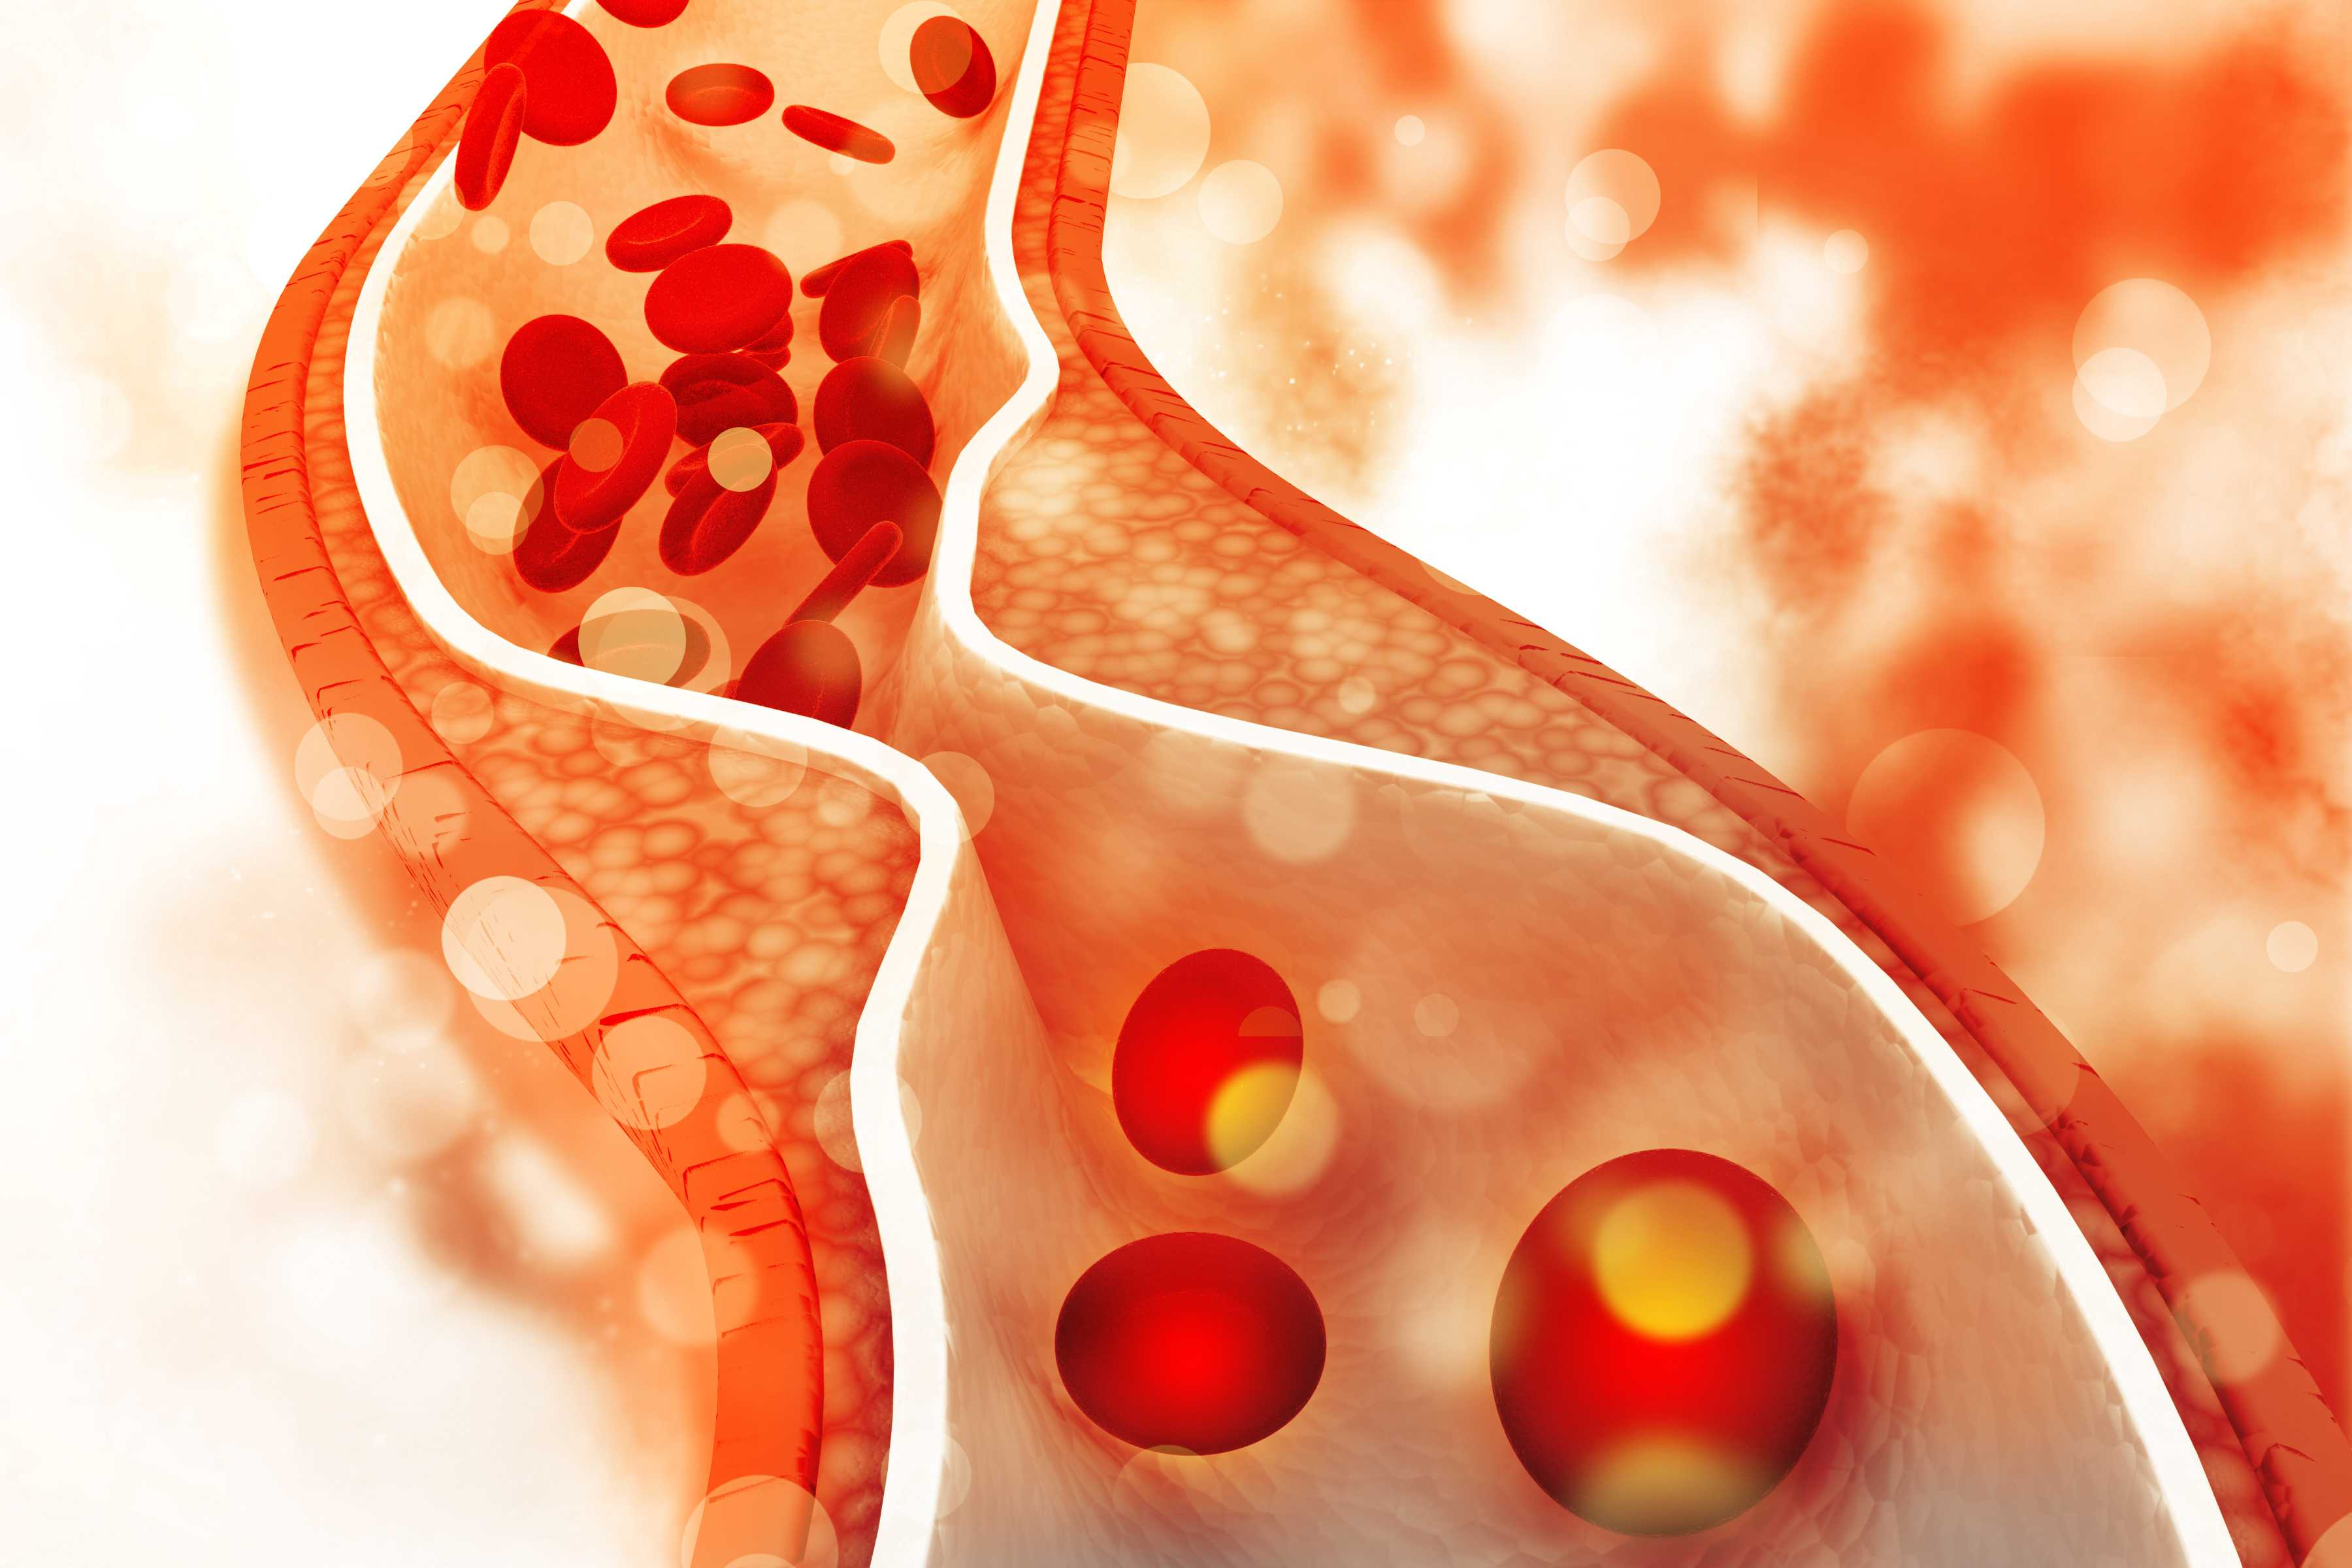 Cholesterol – Cholesterol's Role in the Body